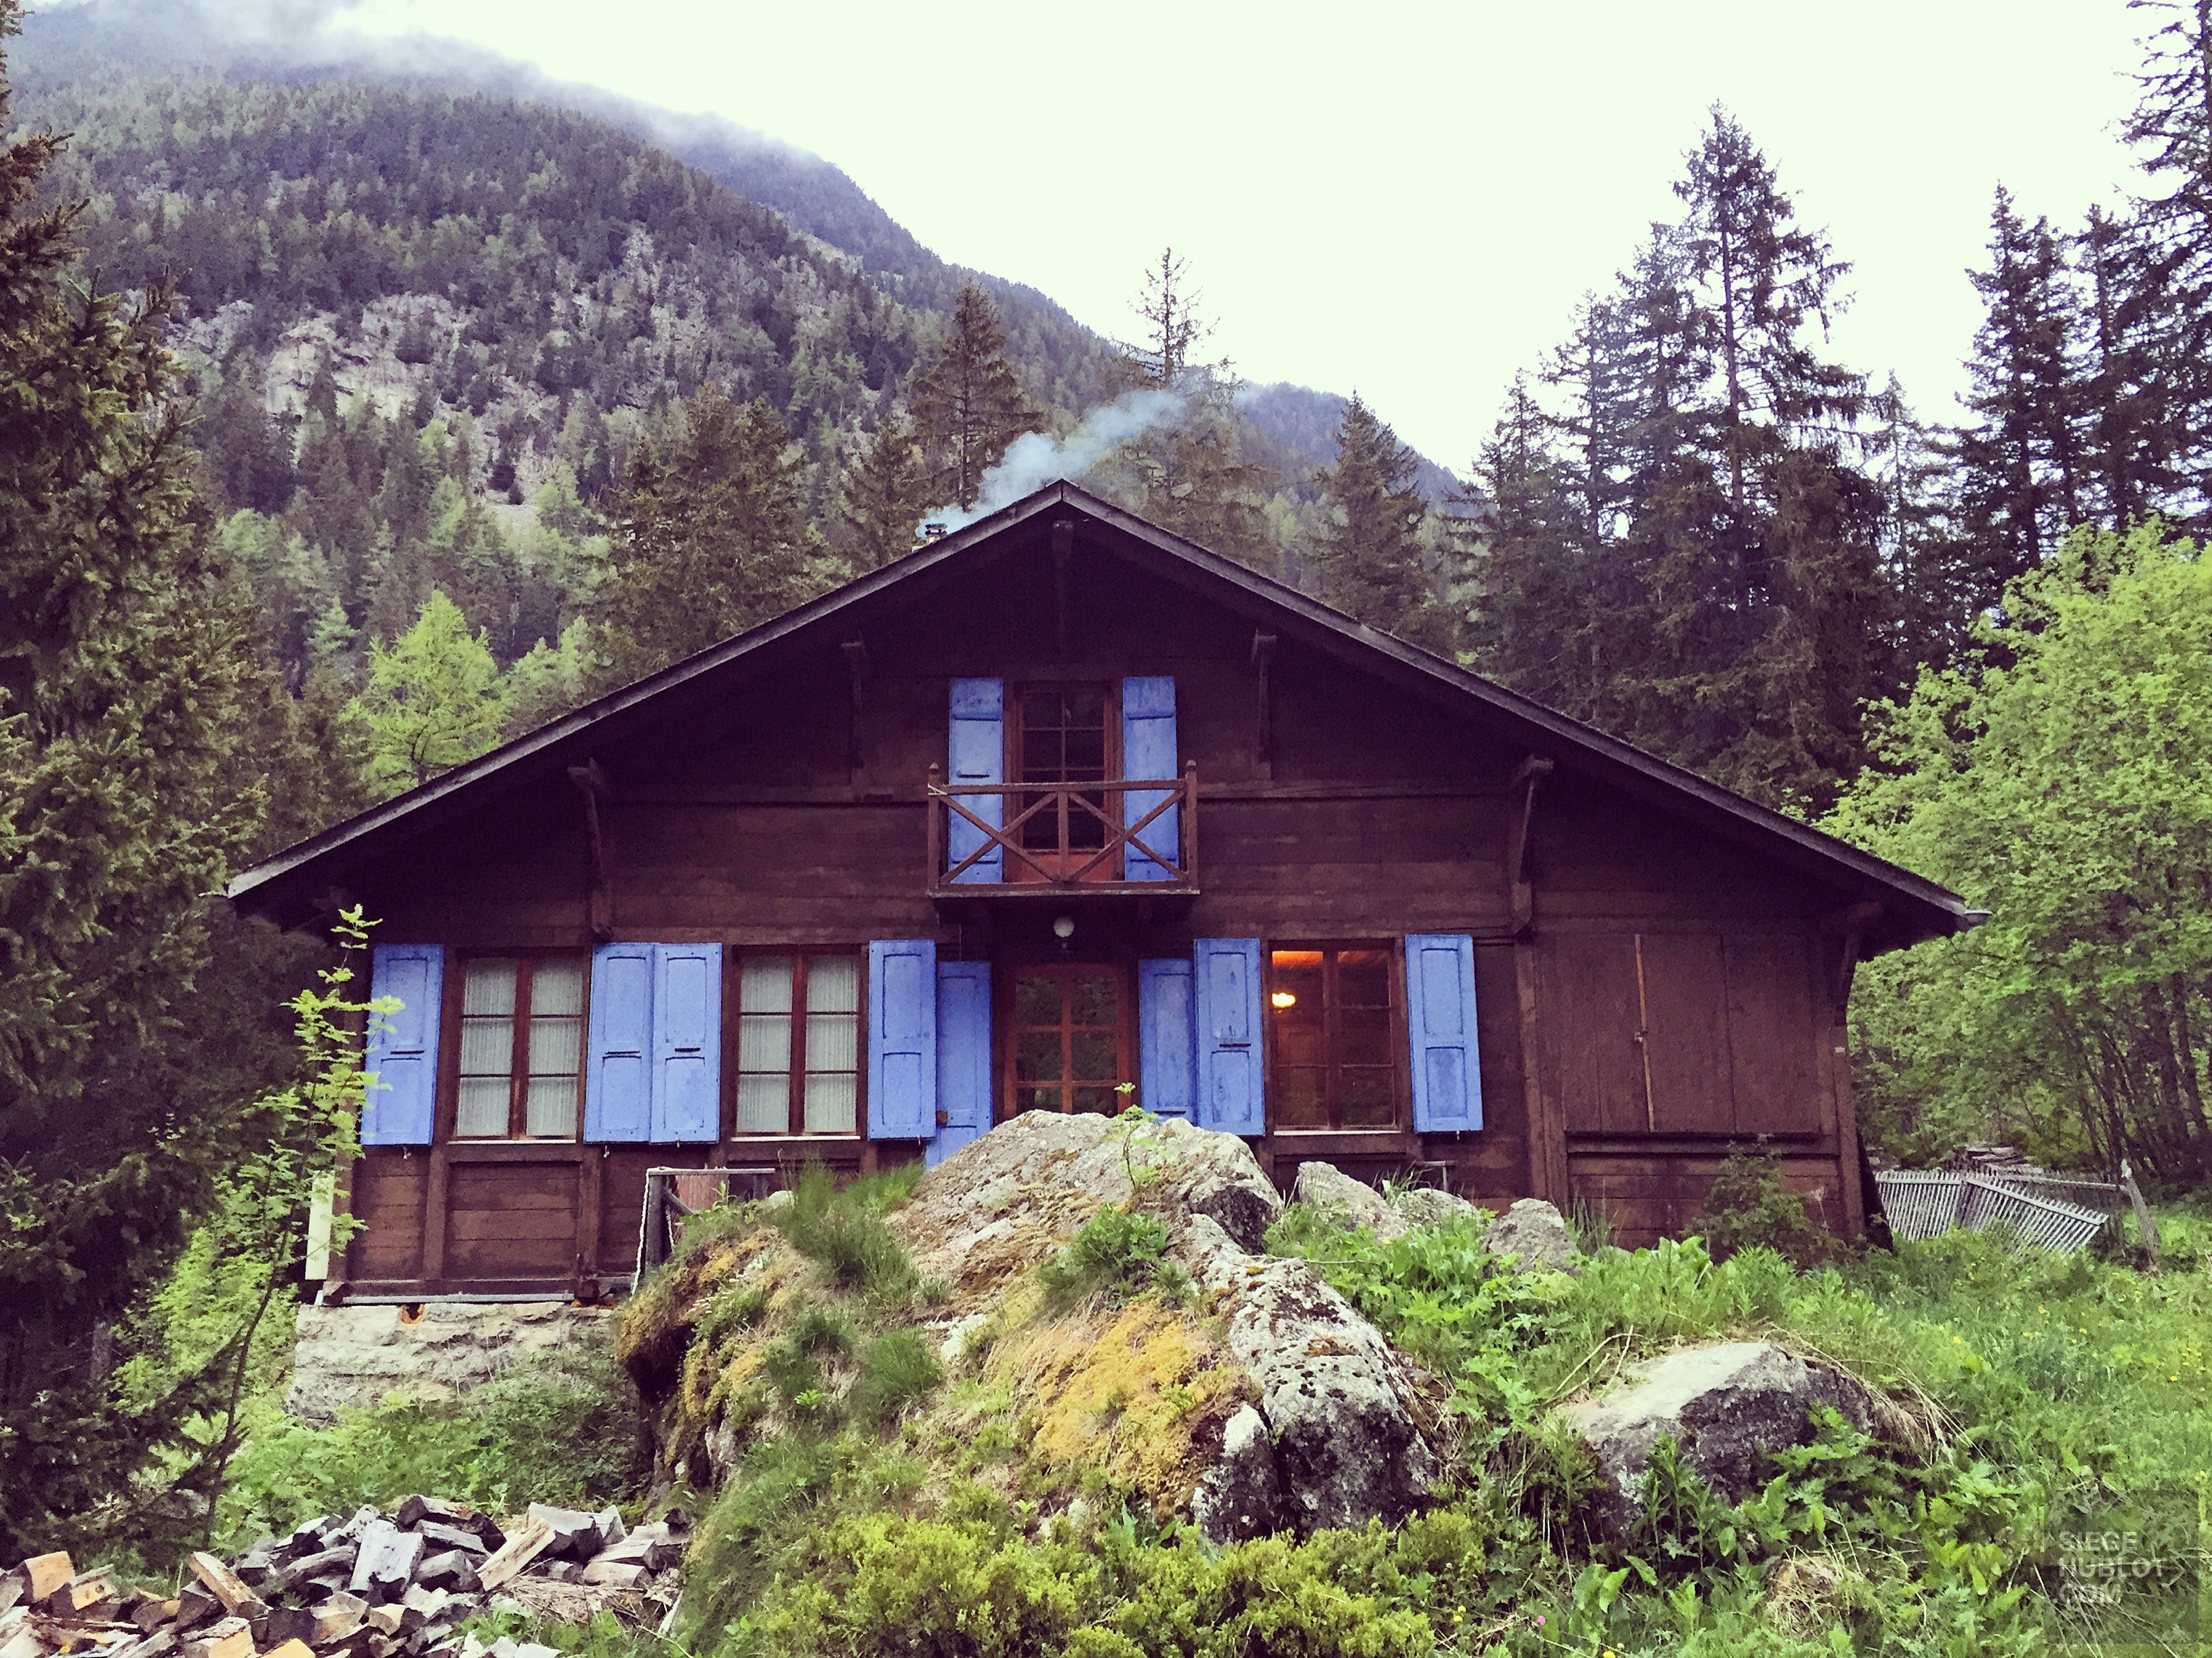 Un chalet en Suisse - suisse, hotels, europe, featured